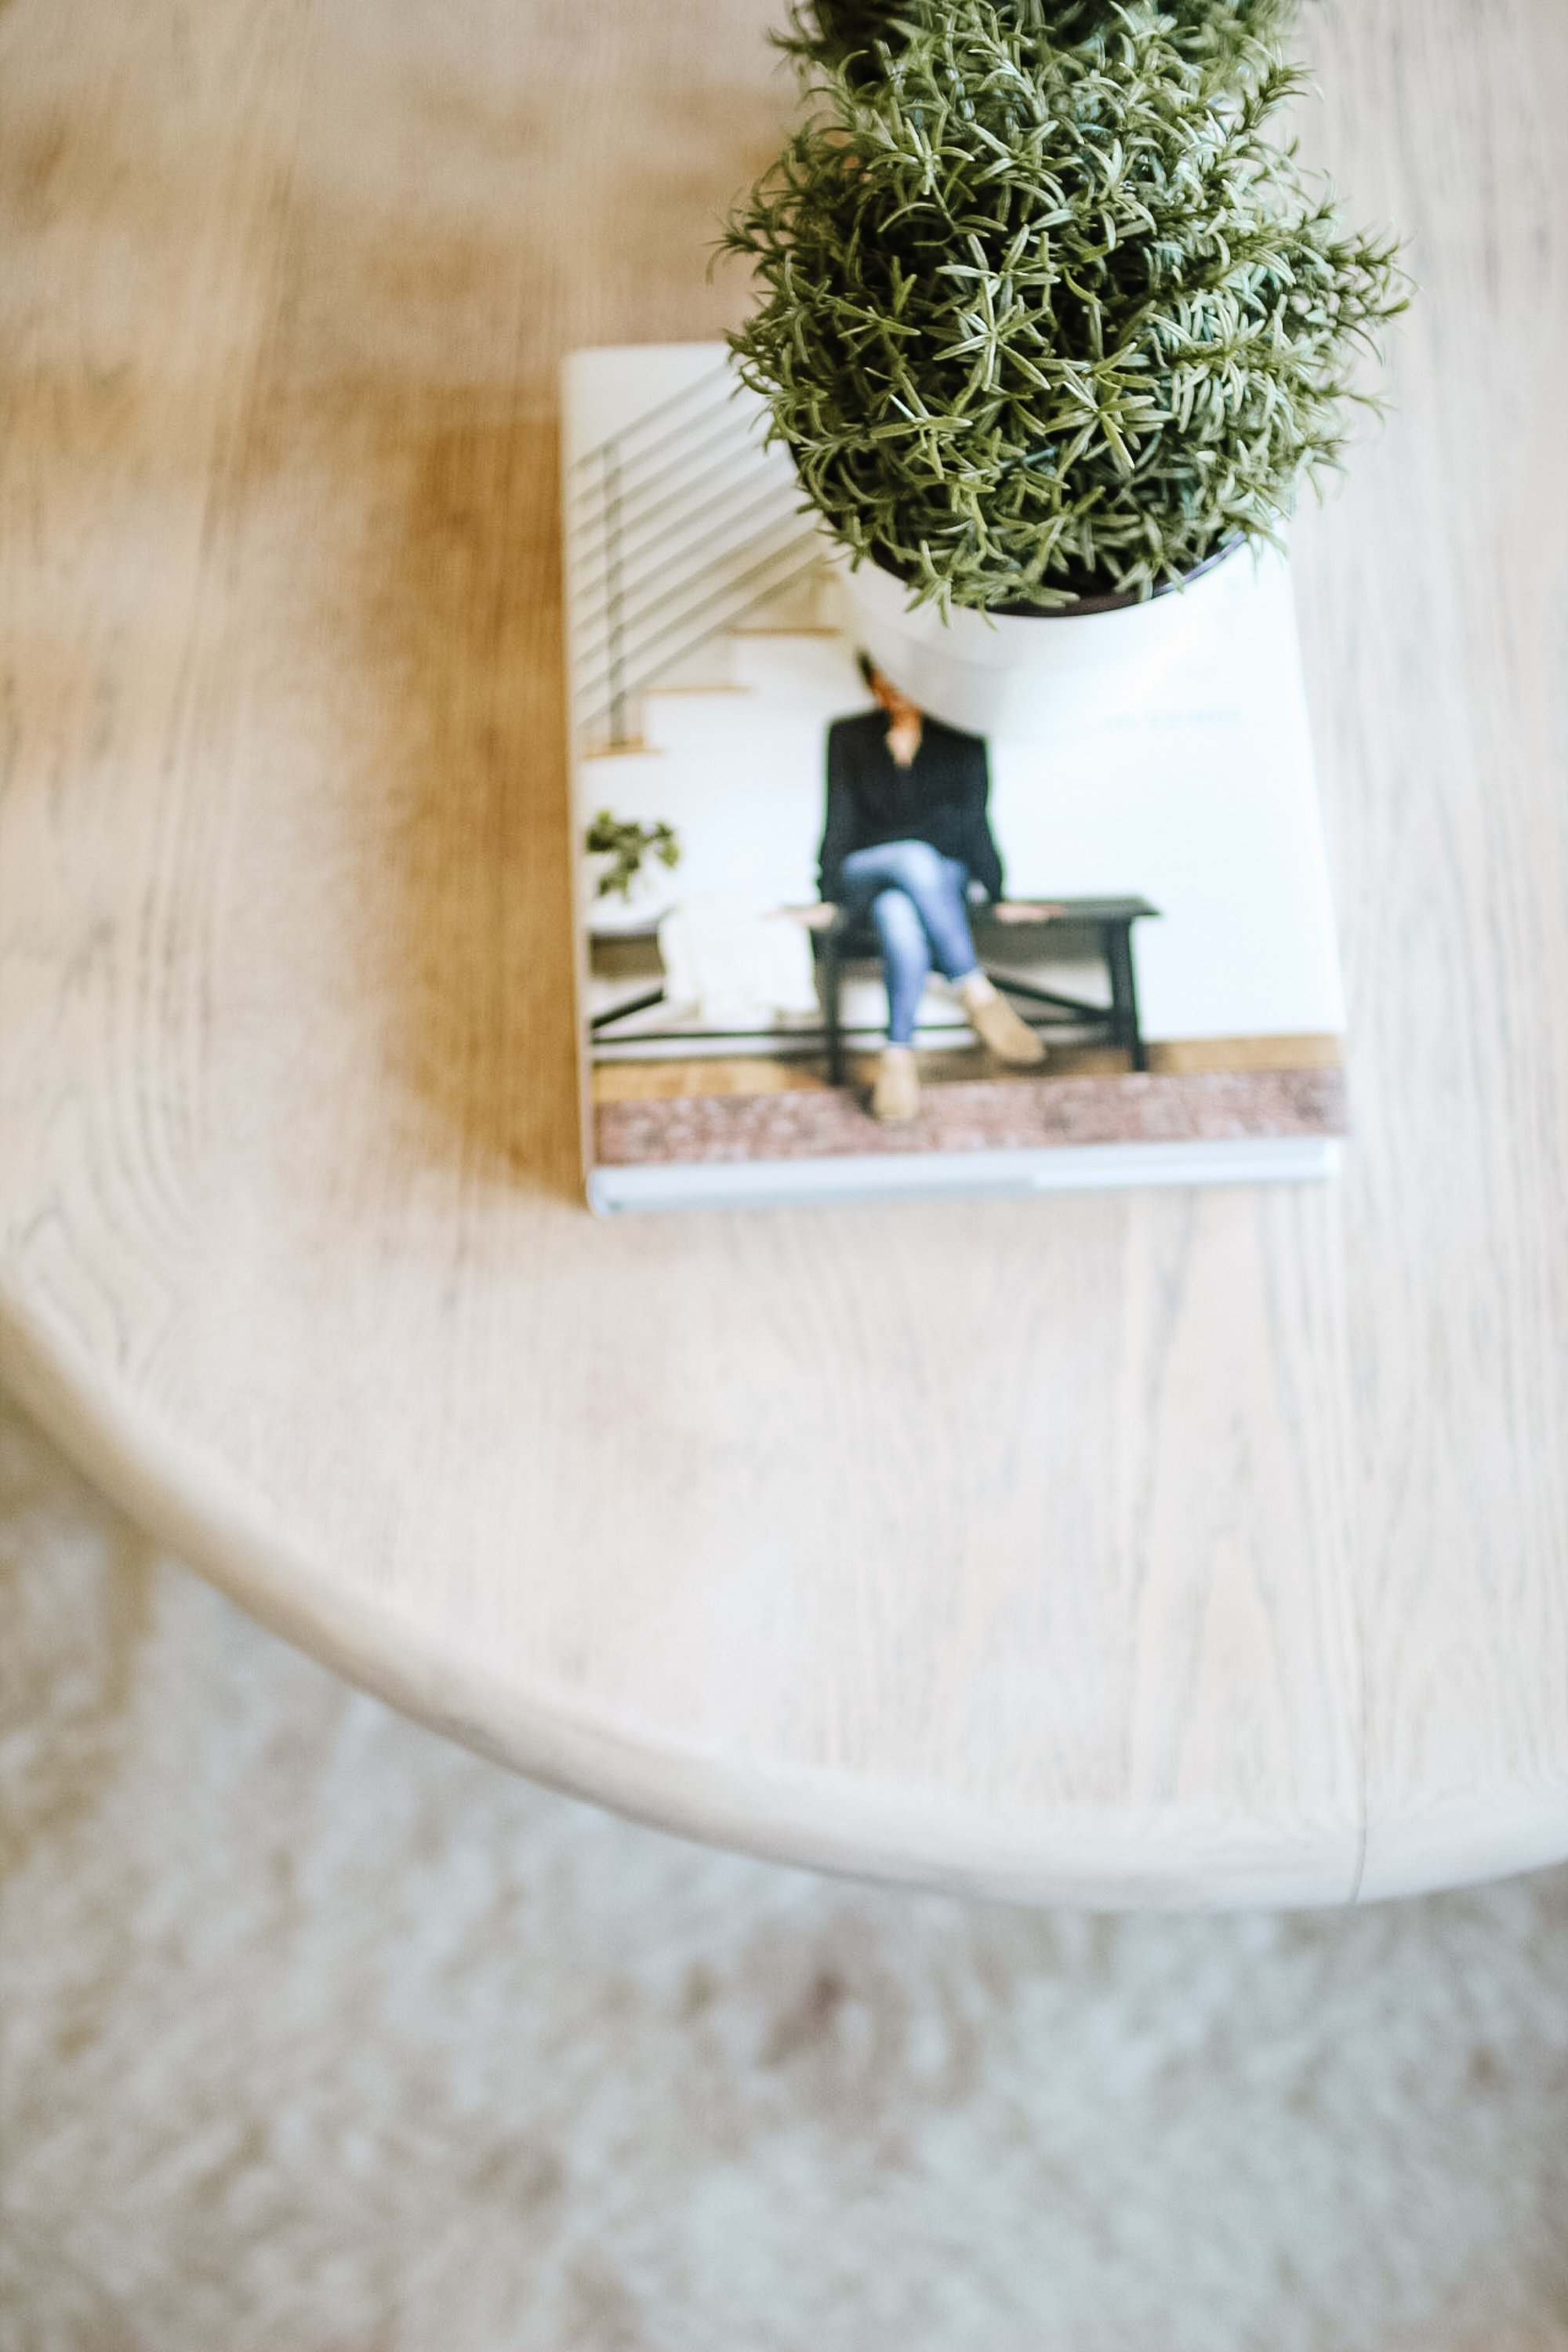 My DIY Refinished Coffee Table. How I Did it For FREE. I paid Twenty Dollars For The Vintage Coffee Table and Stripped The Top and Spray Painted The Base. Gorgeous Modern Farmhouse Coffee Table